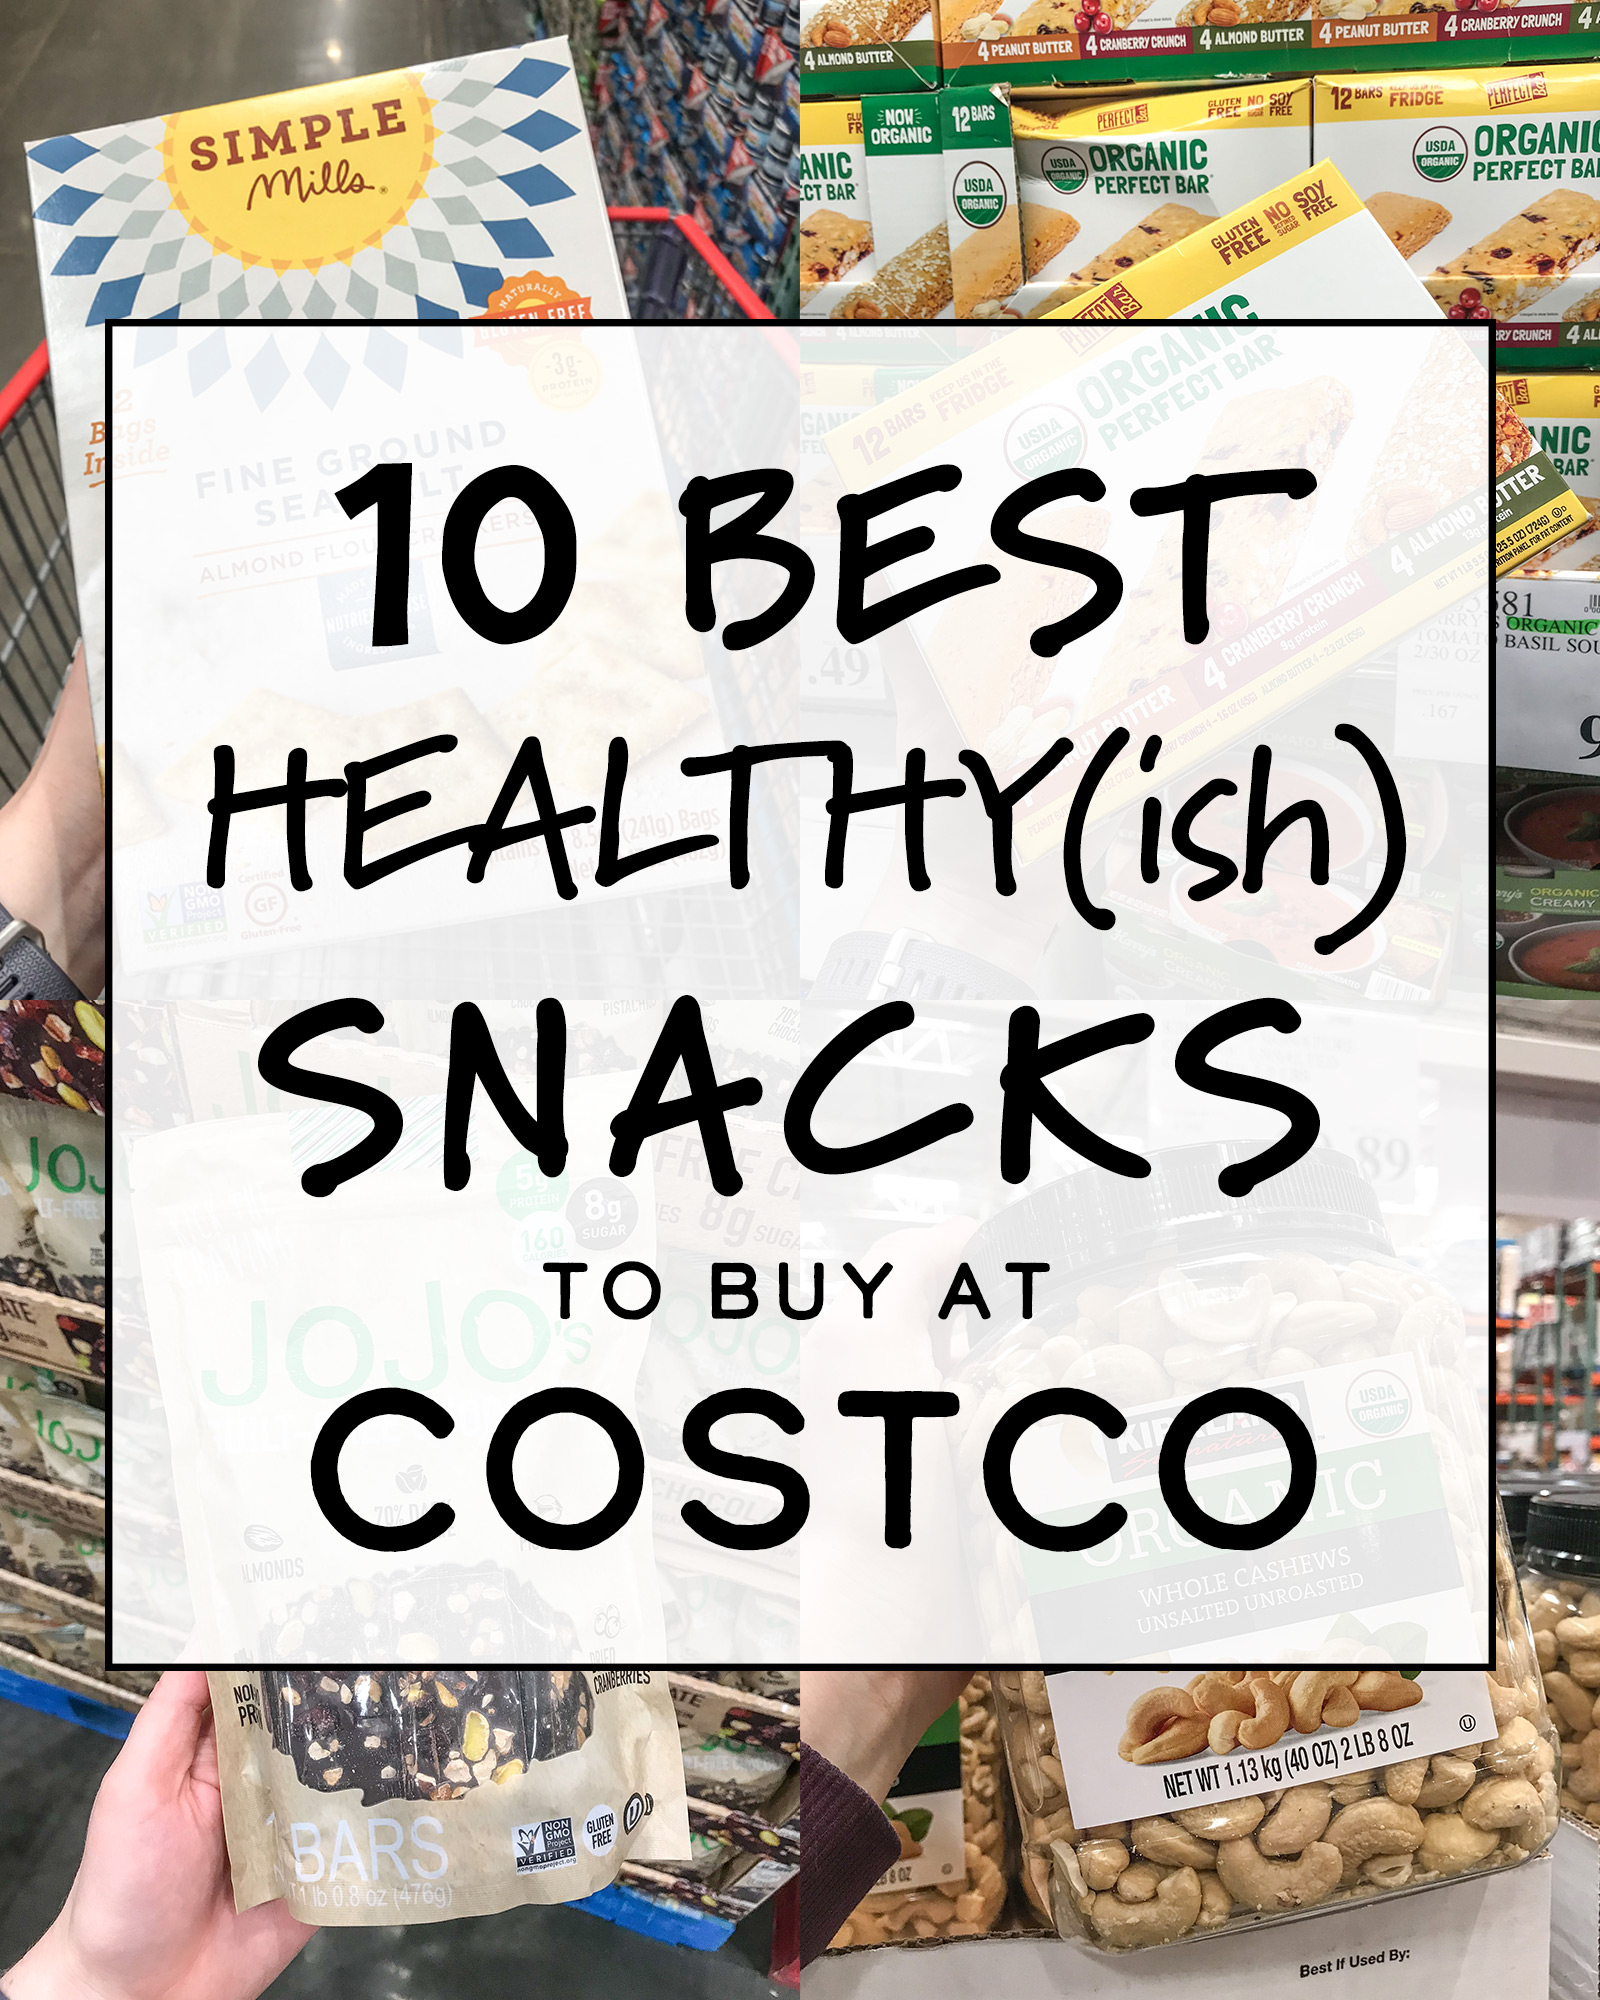 10 Best Healthy(ish) Snacks to Buy at Costco - Project Meal Plan